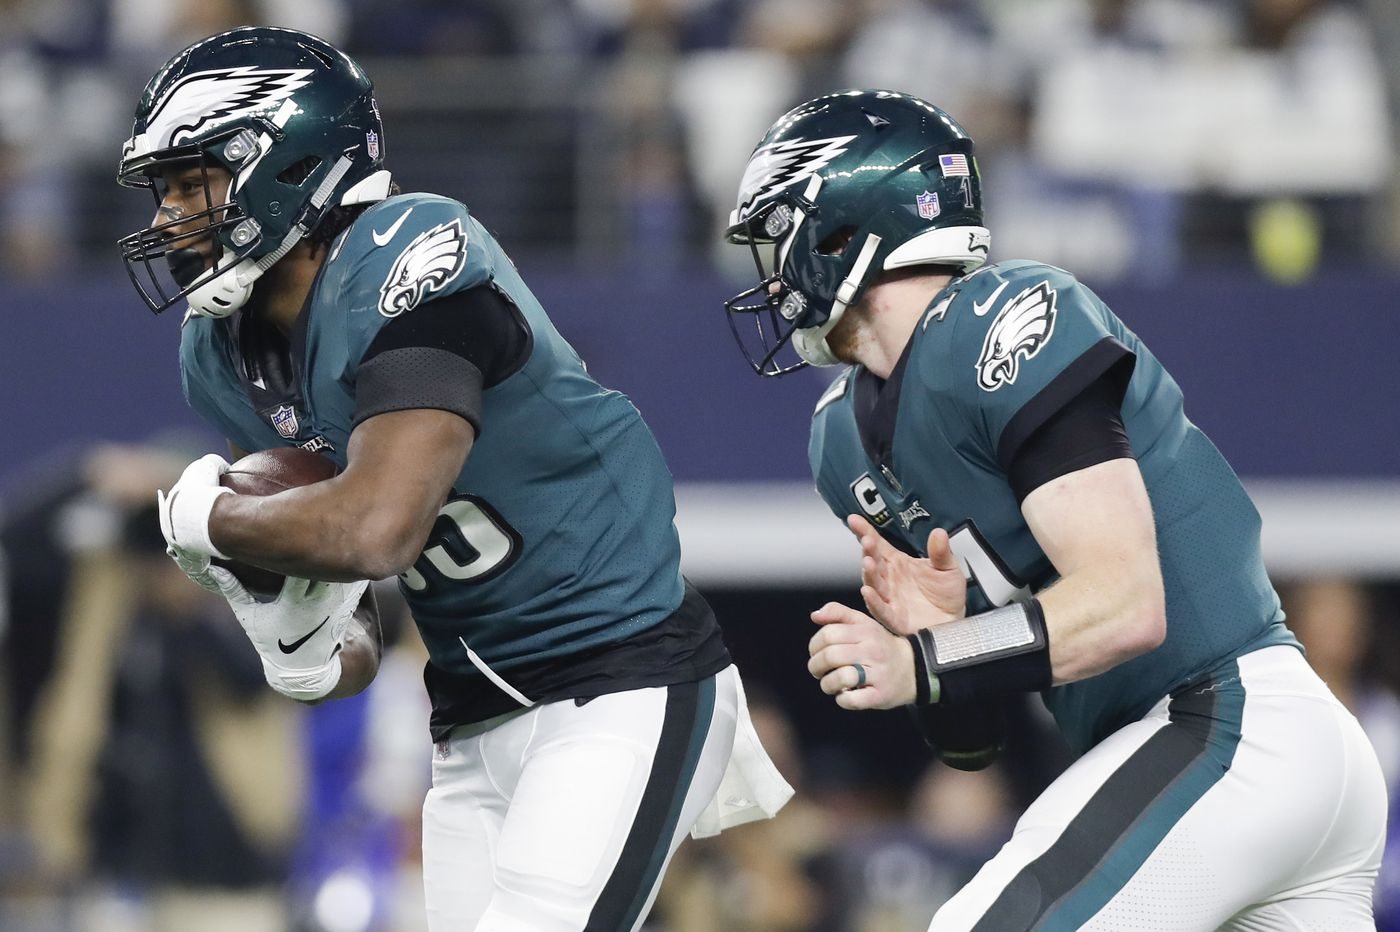 With Nick Foles expected to start against Rams, Eagles need to be committed to the run